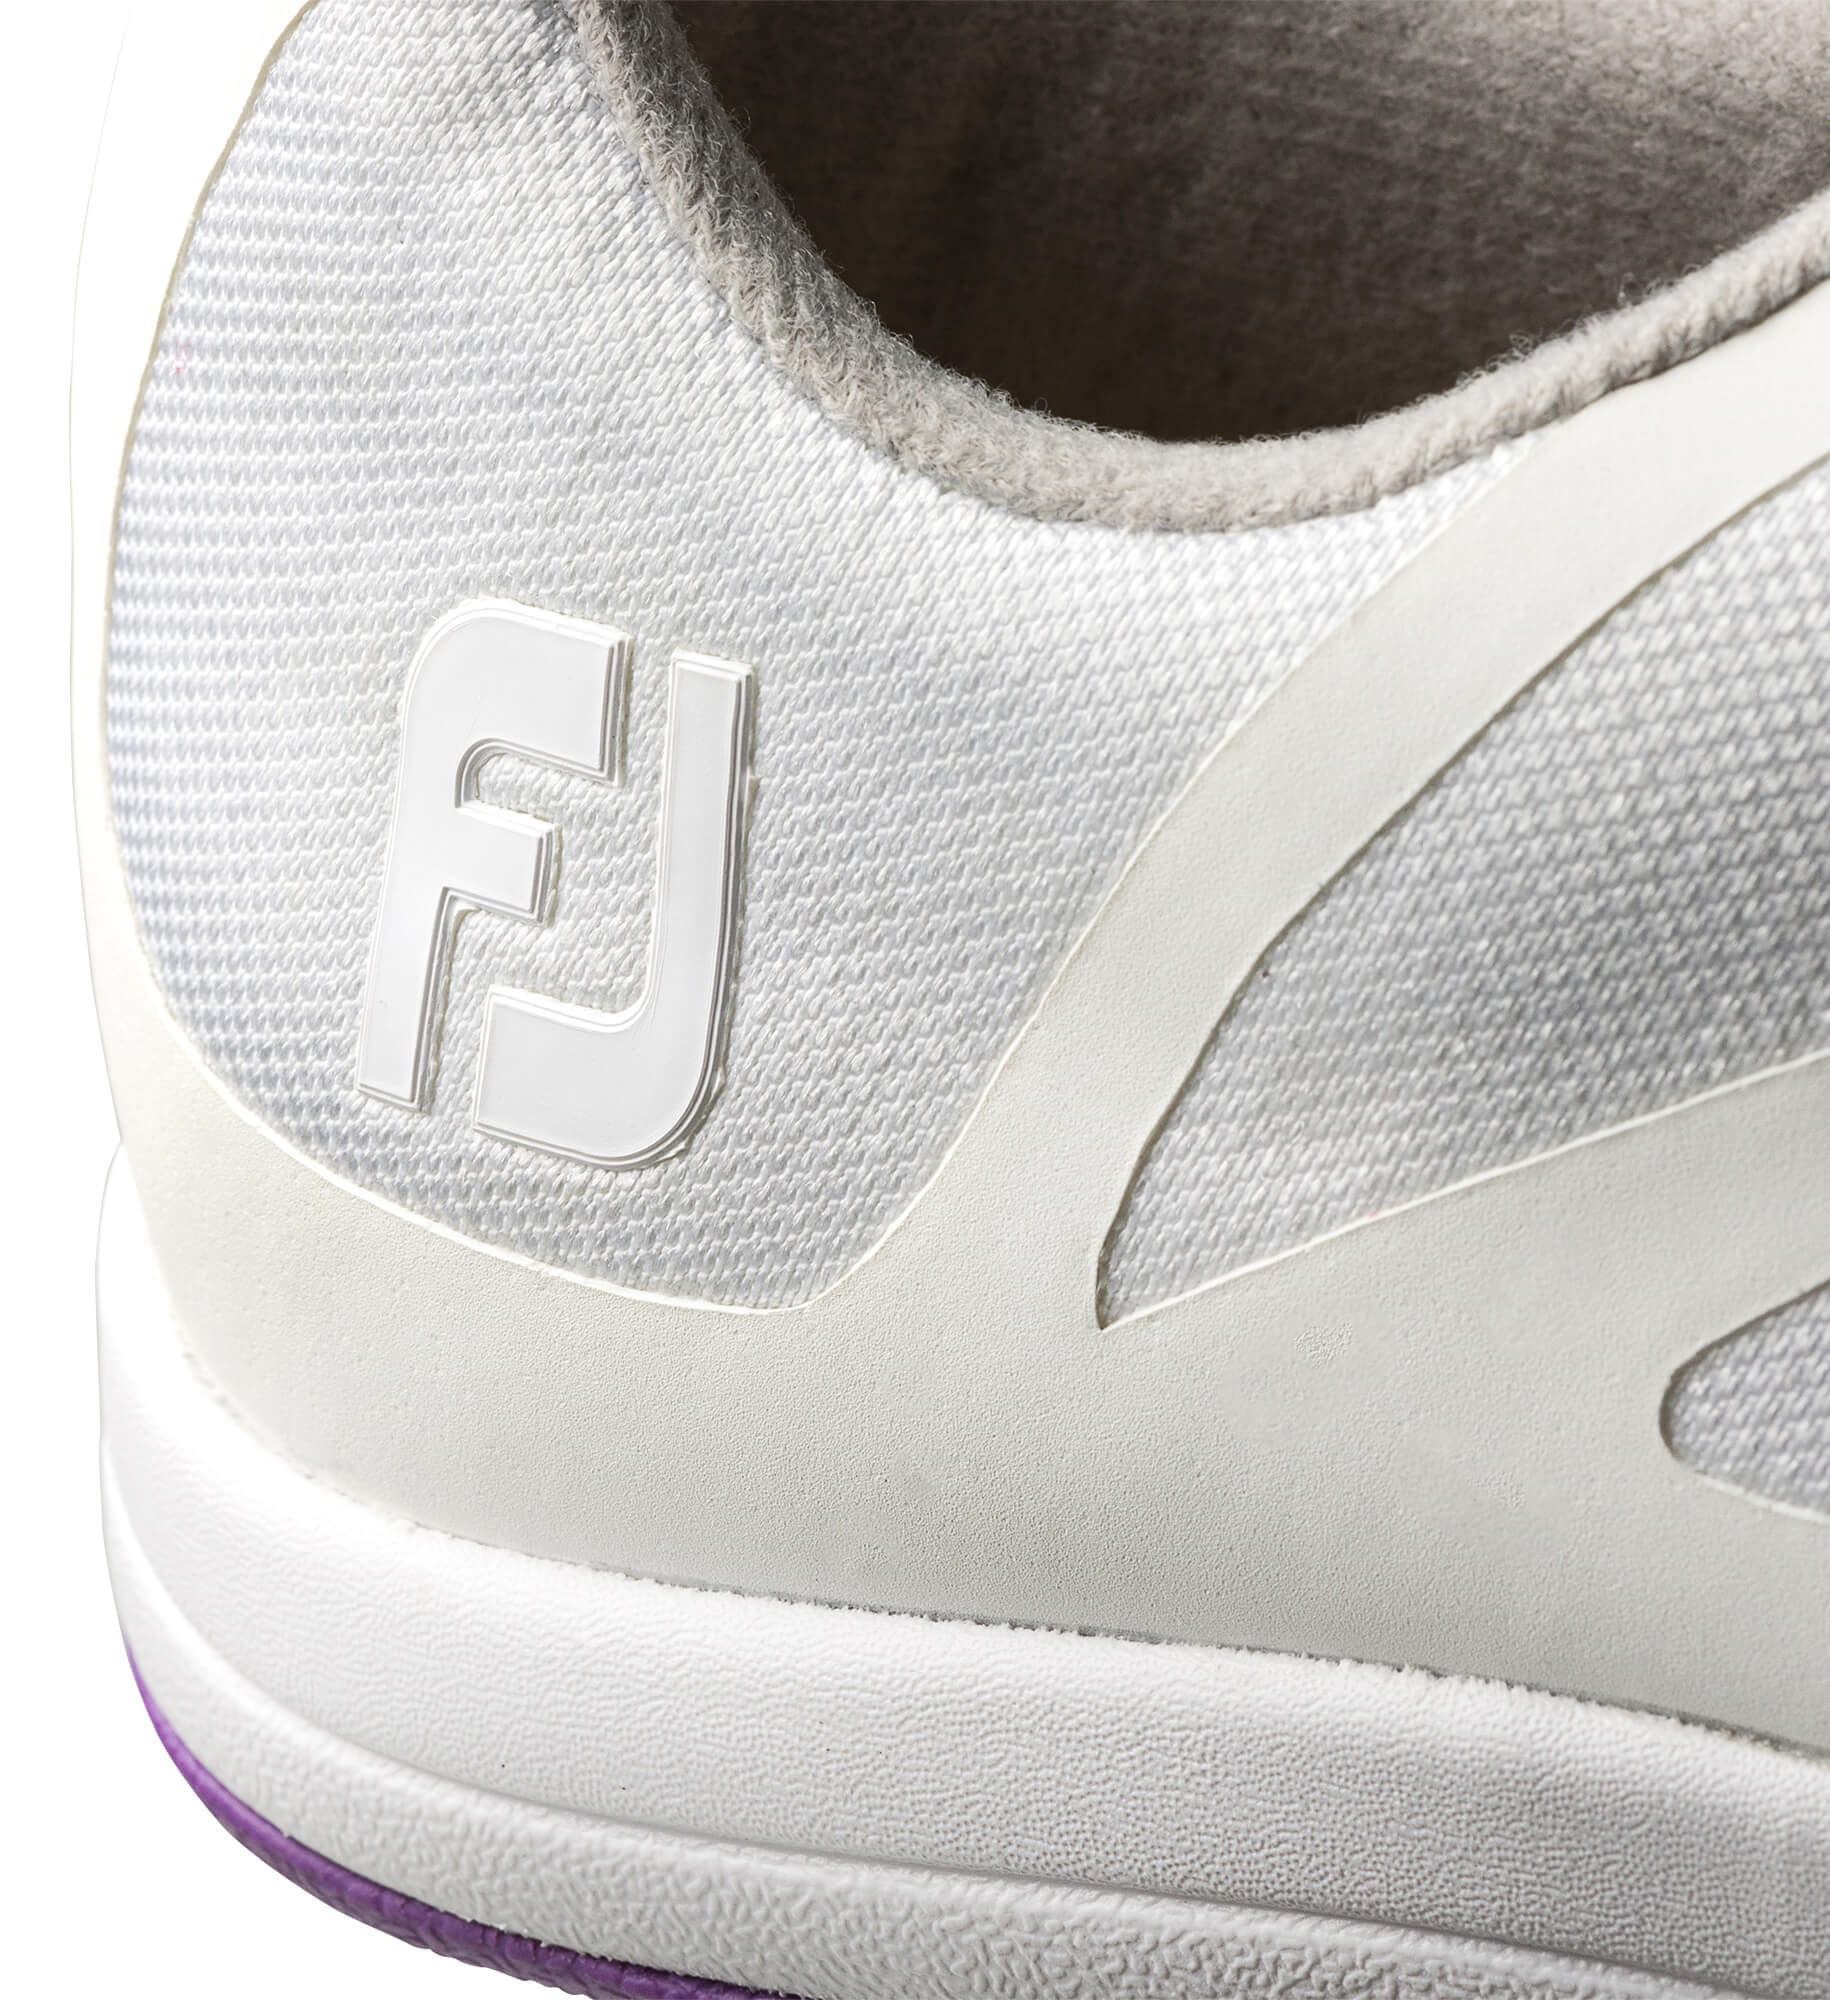 FootJoy-Women-039-s-Leisure-Golf-Shoes-Spikeless-Ladies-New-Choose-Color-amp-Size thumbnail 9